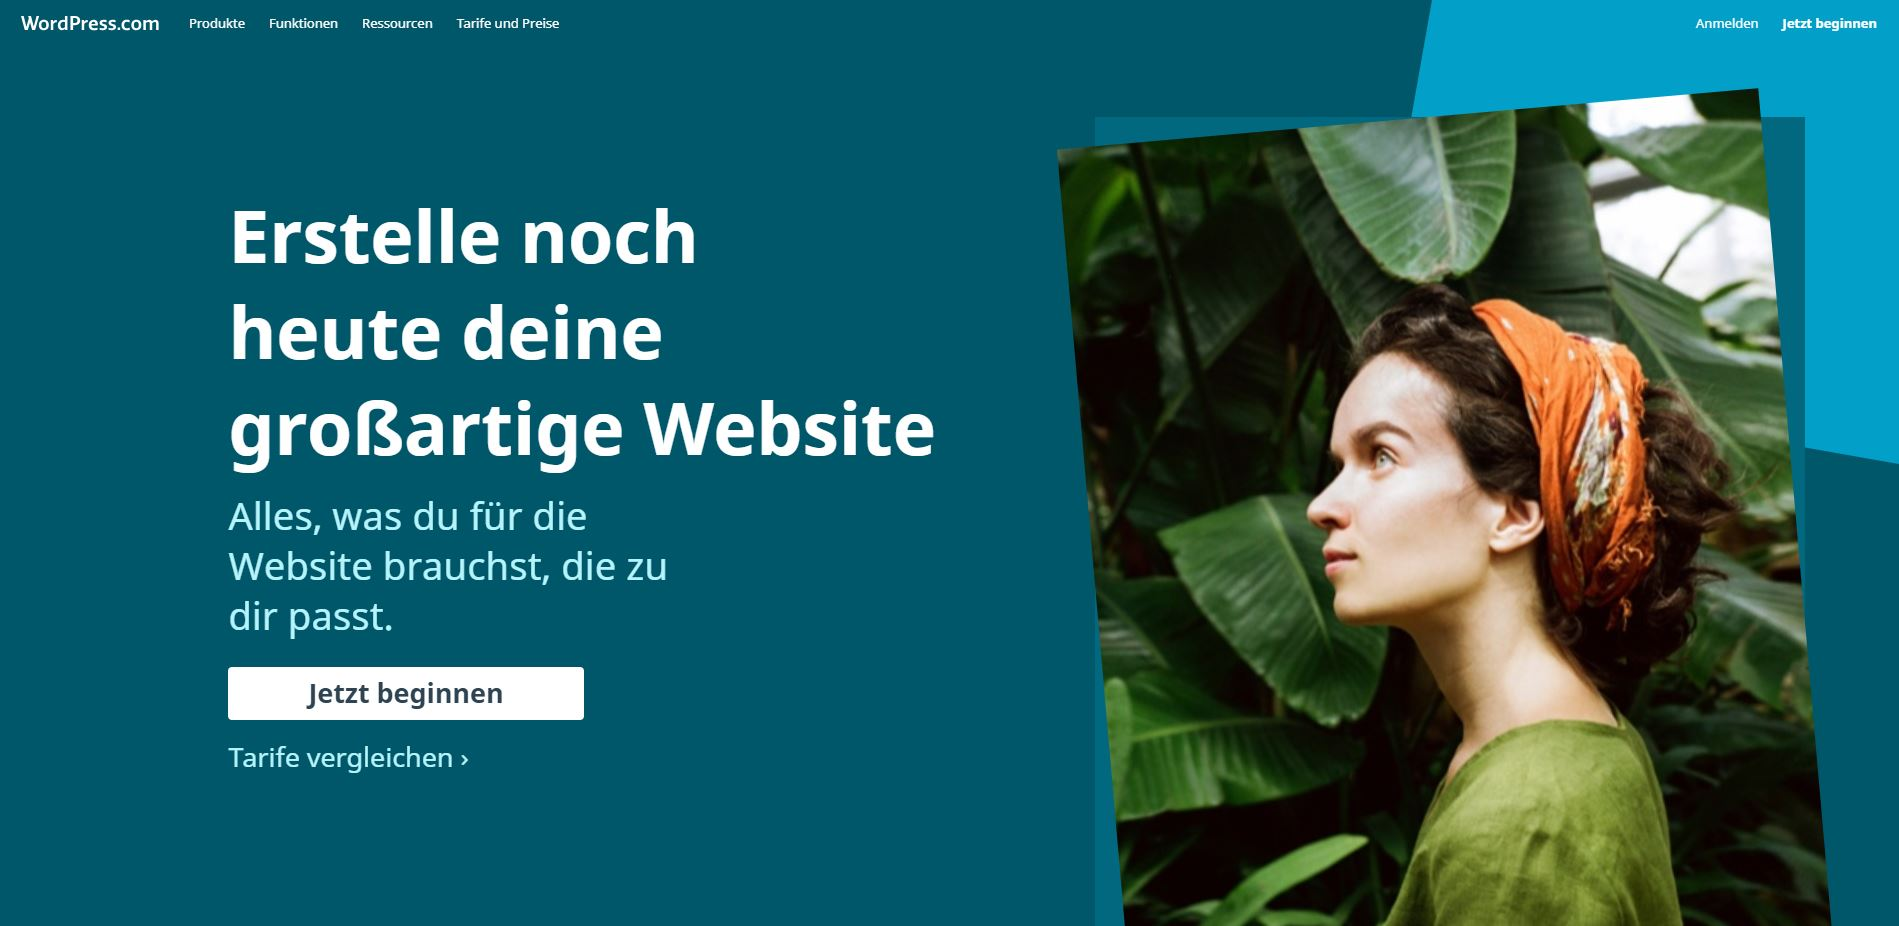 Einen hosted Blog bei WordPress anlegen